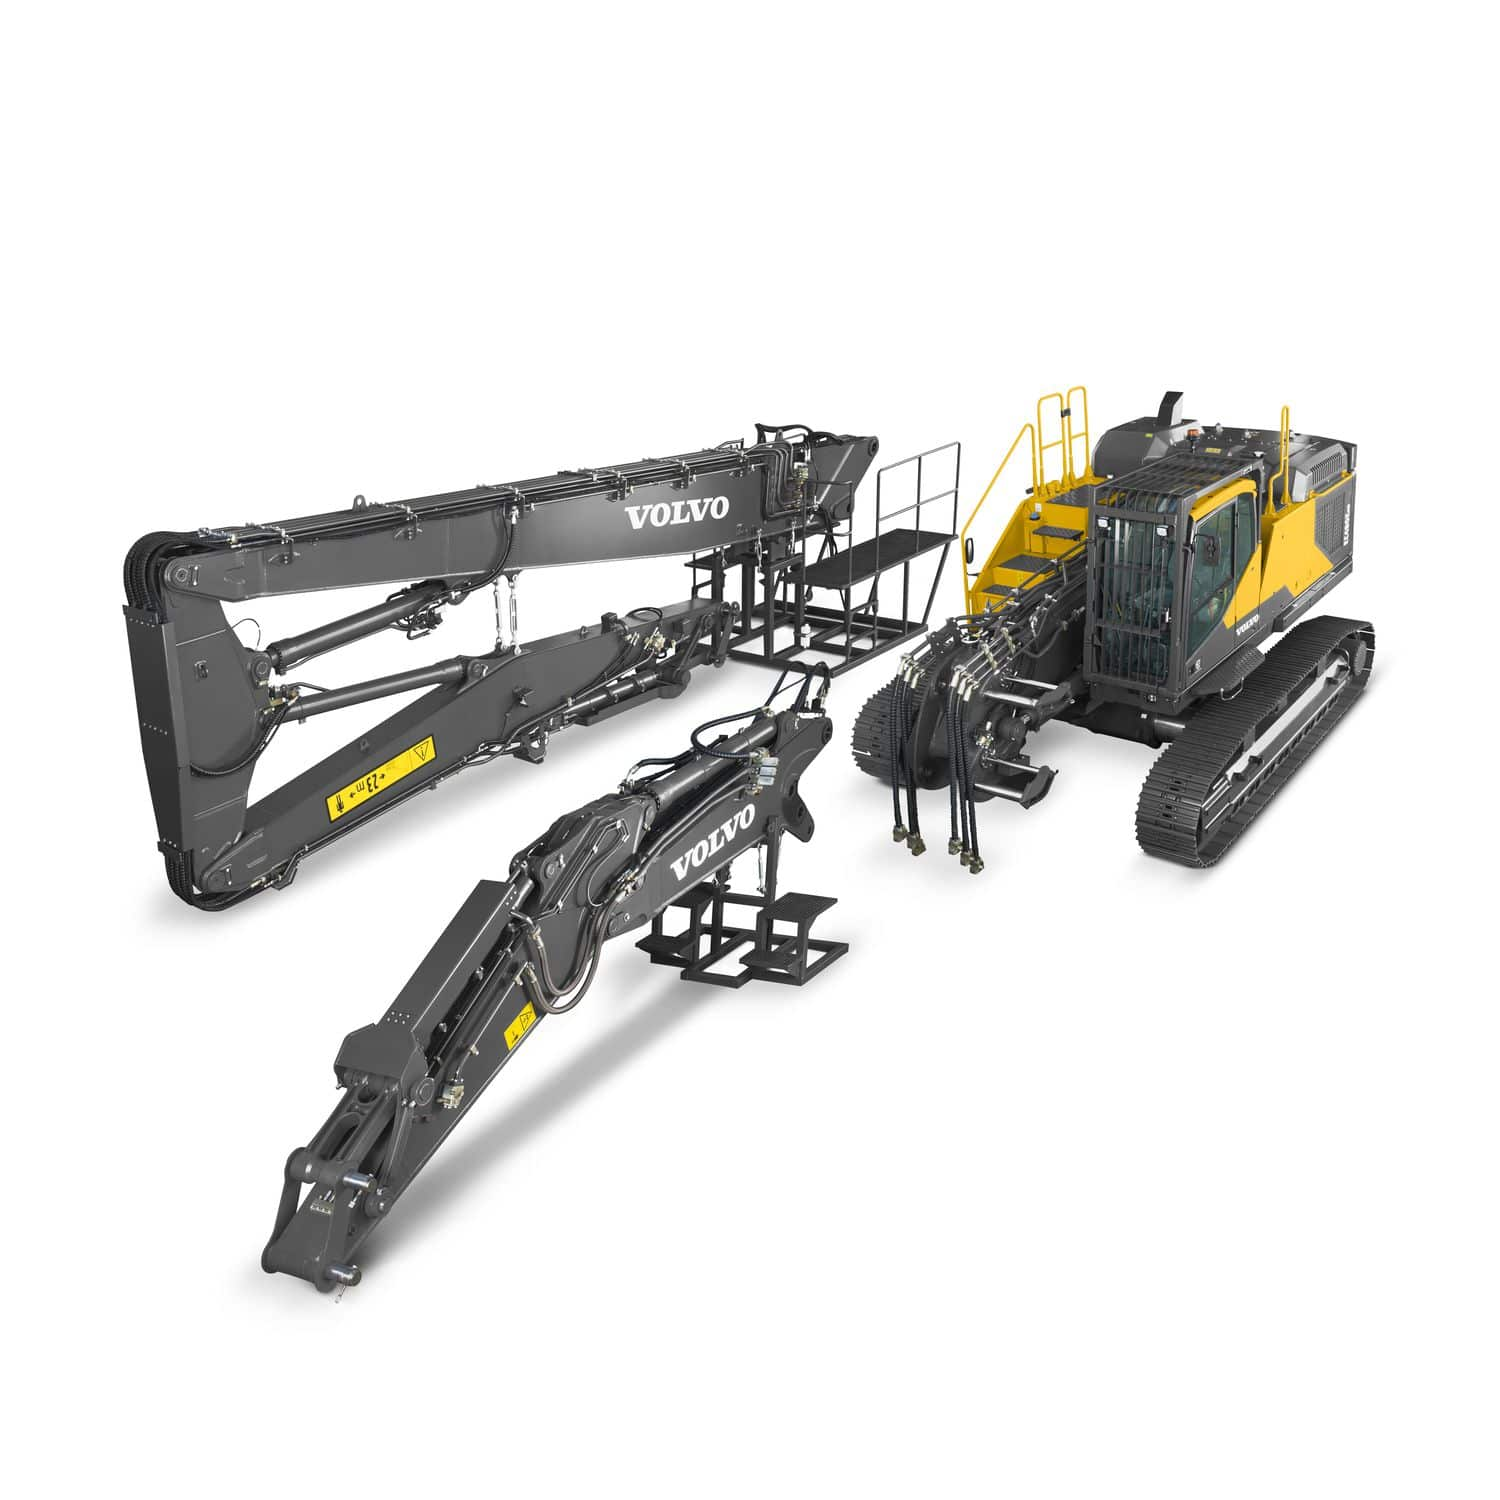 volvo demolition equipment